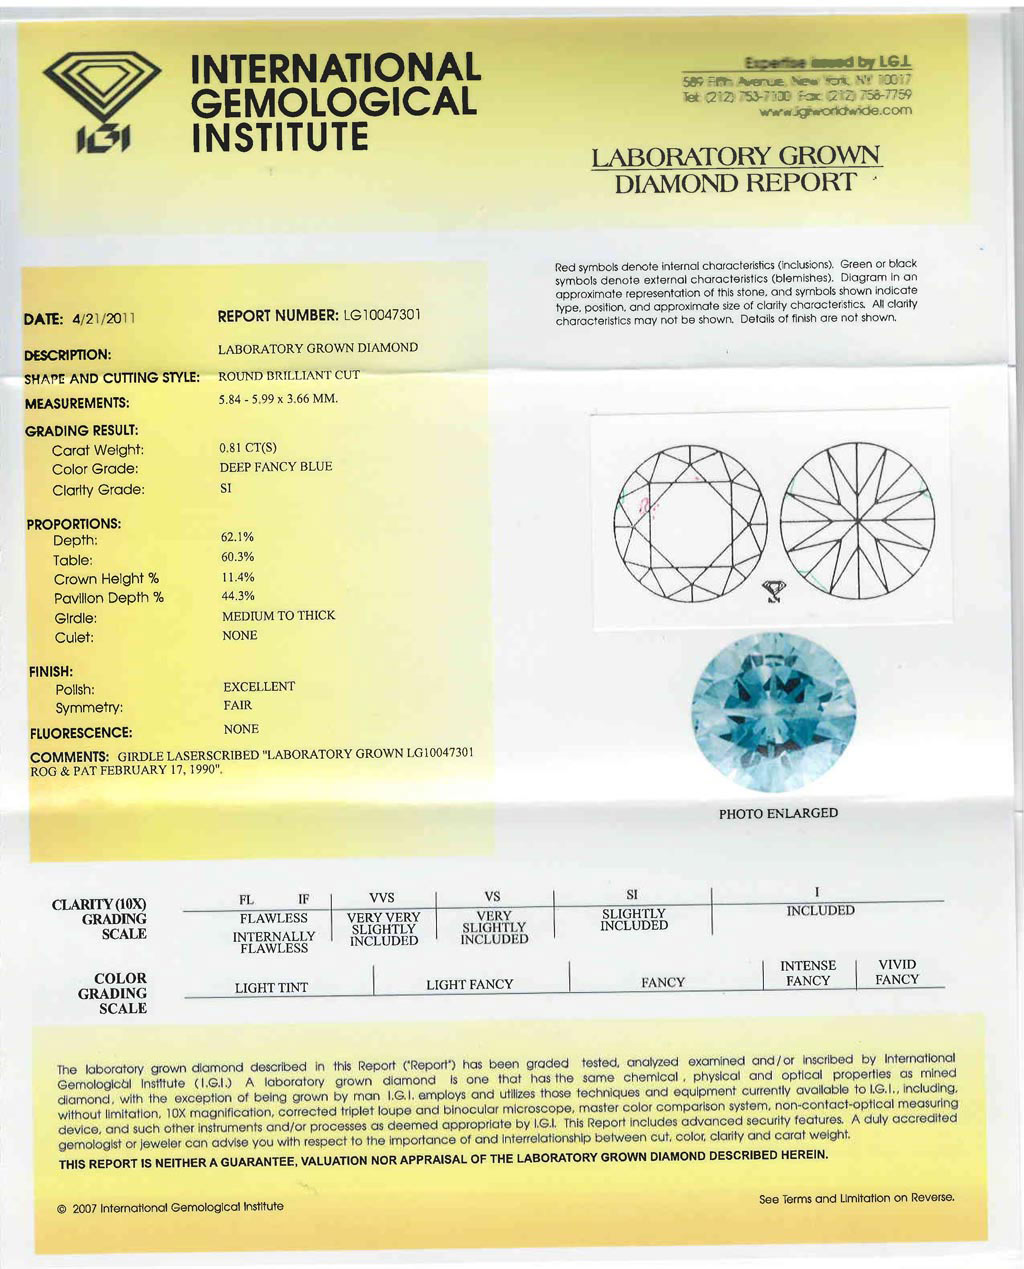 igi give of institute an reports and to color strict according certdisplay report gemological cut diamond accurate international standards wide clarity s a assessment weight carat